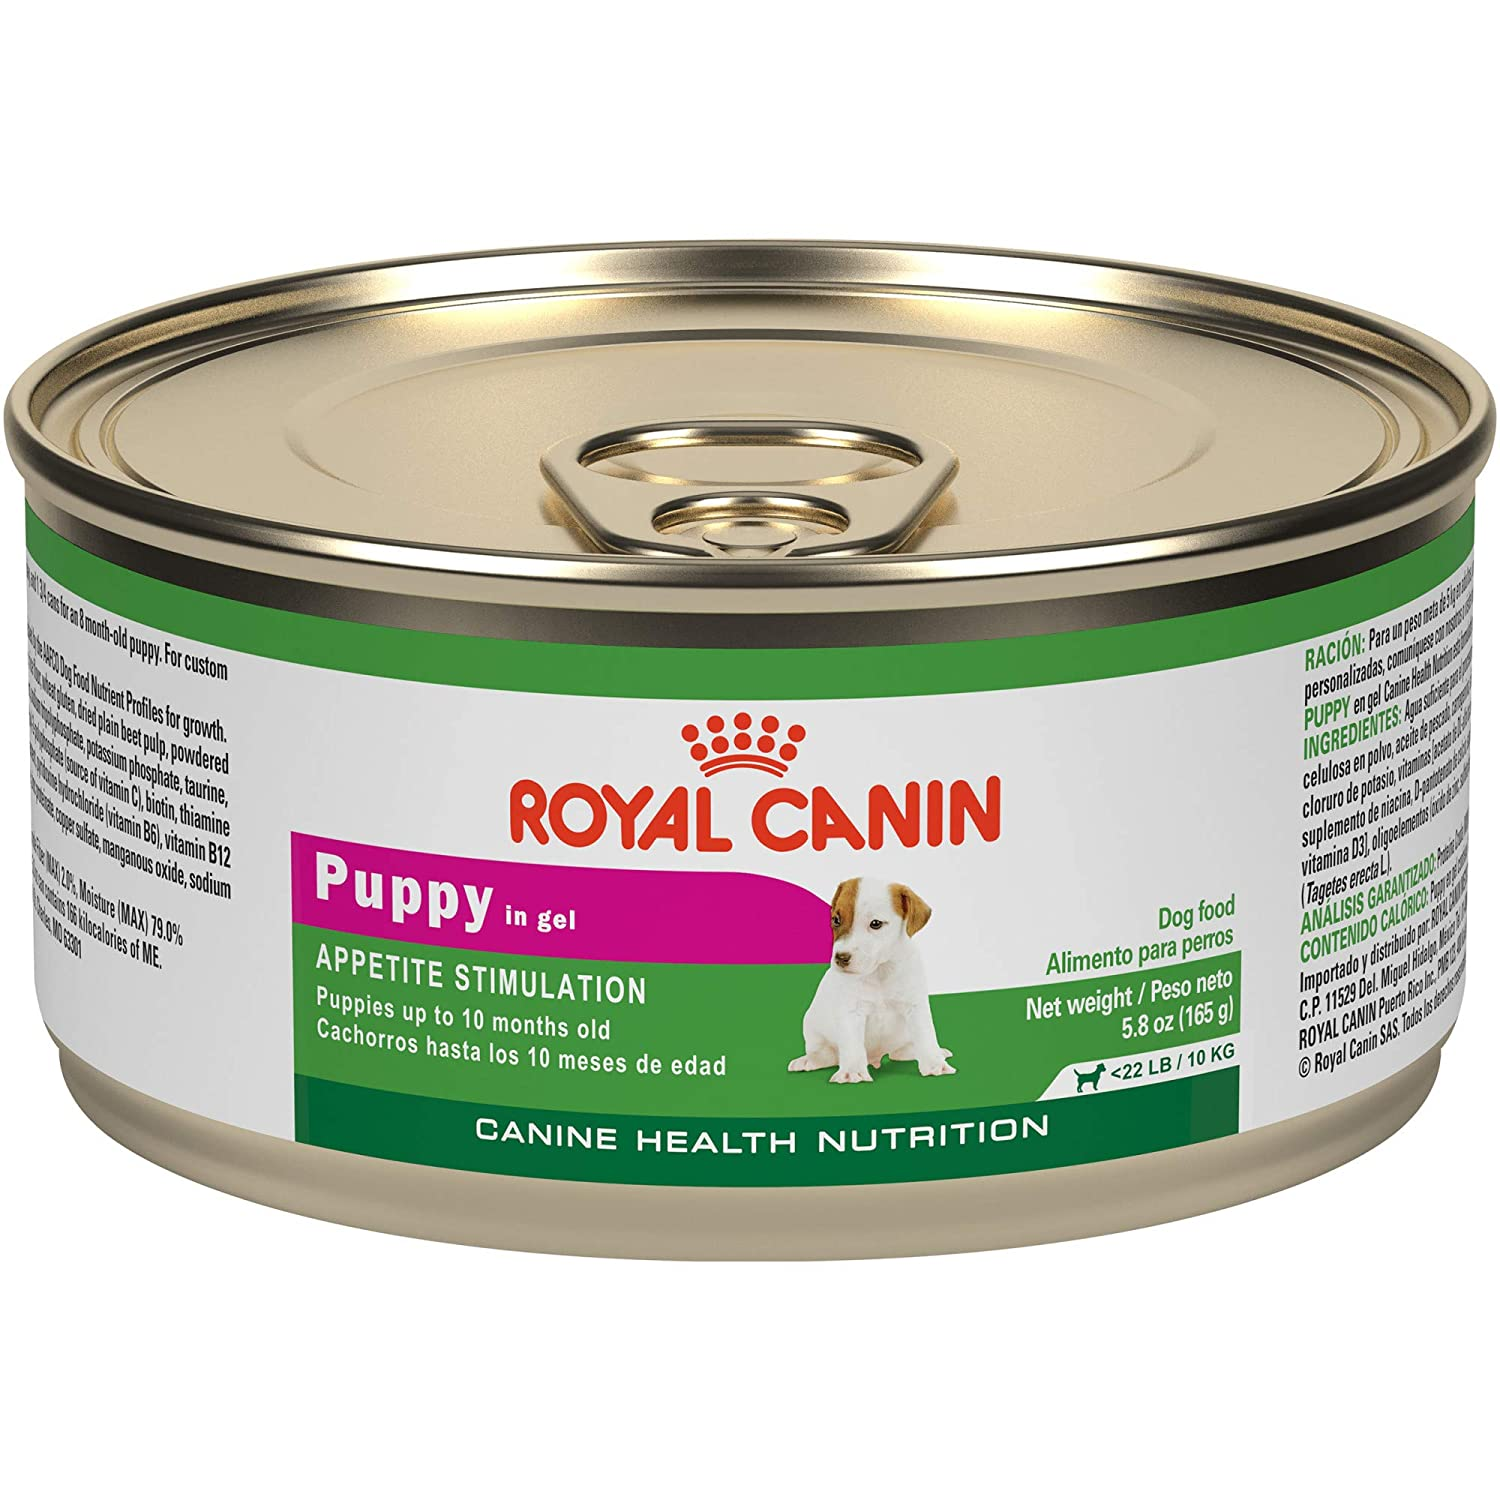 Royal Canin Health Nutrition Puppy In Gel Tray Dog Food, 3.5 oz, 24 Count: Pet Supplies: Amazon.com